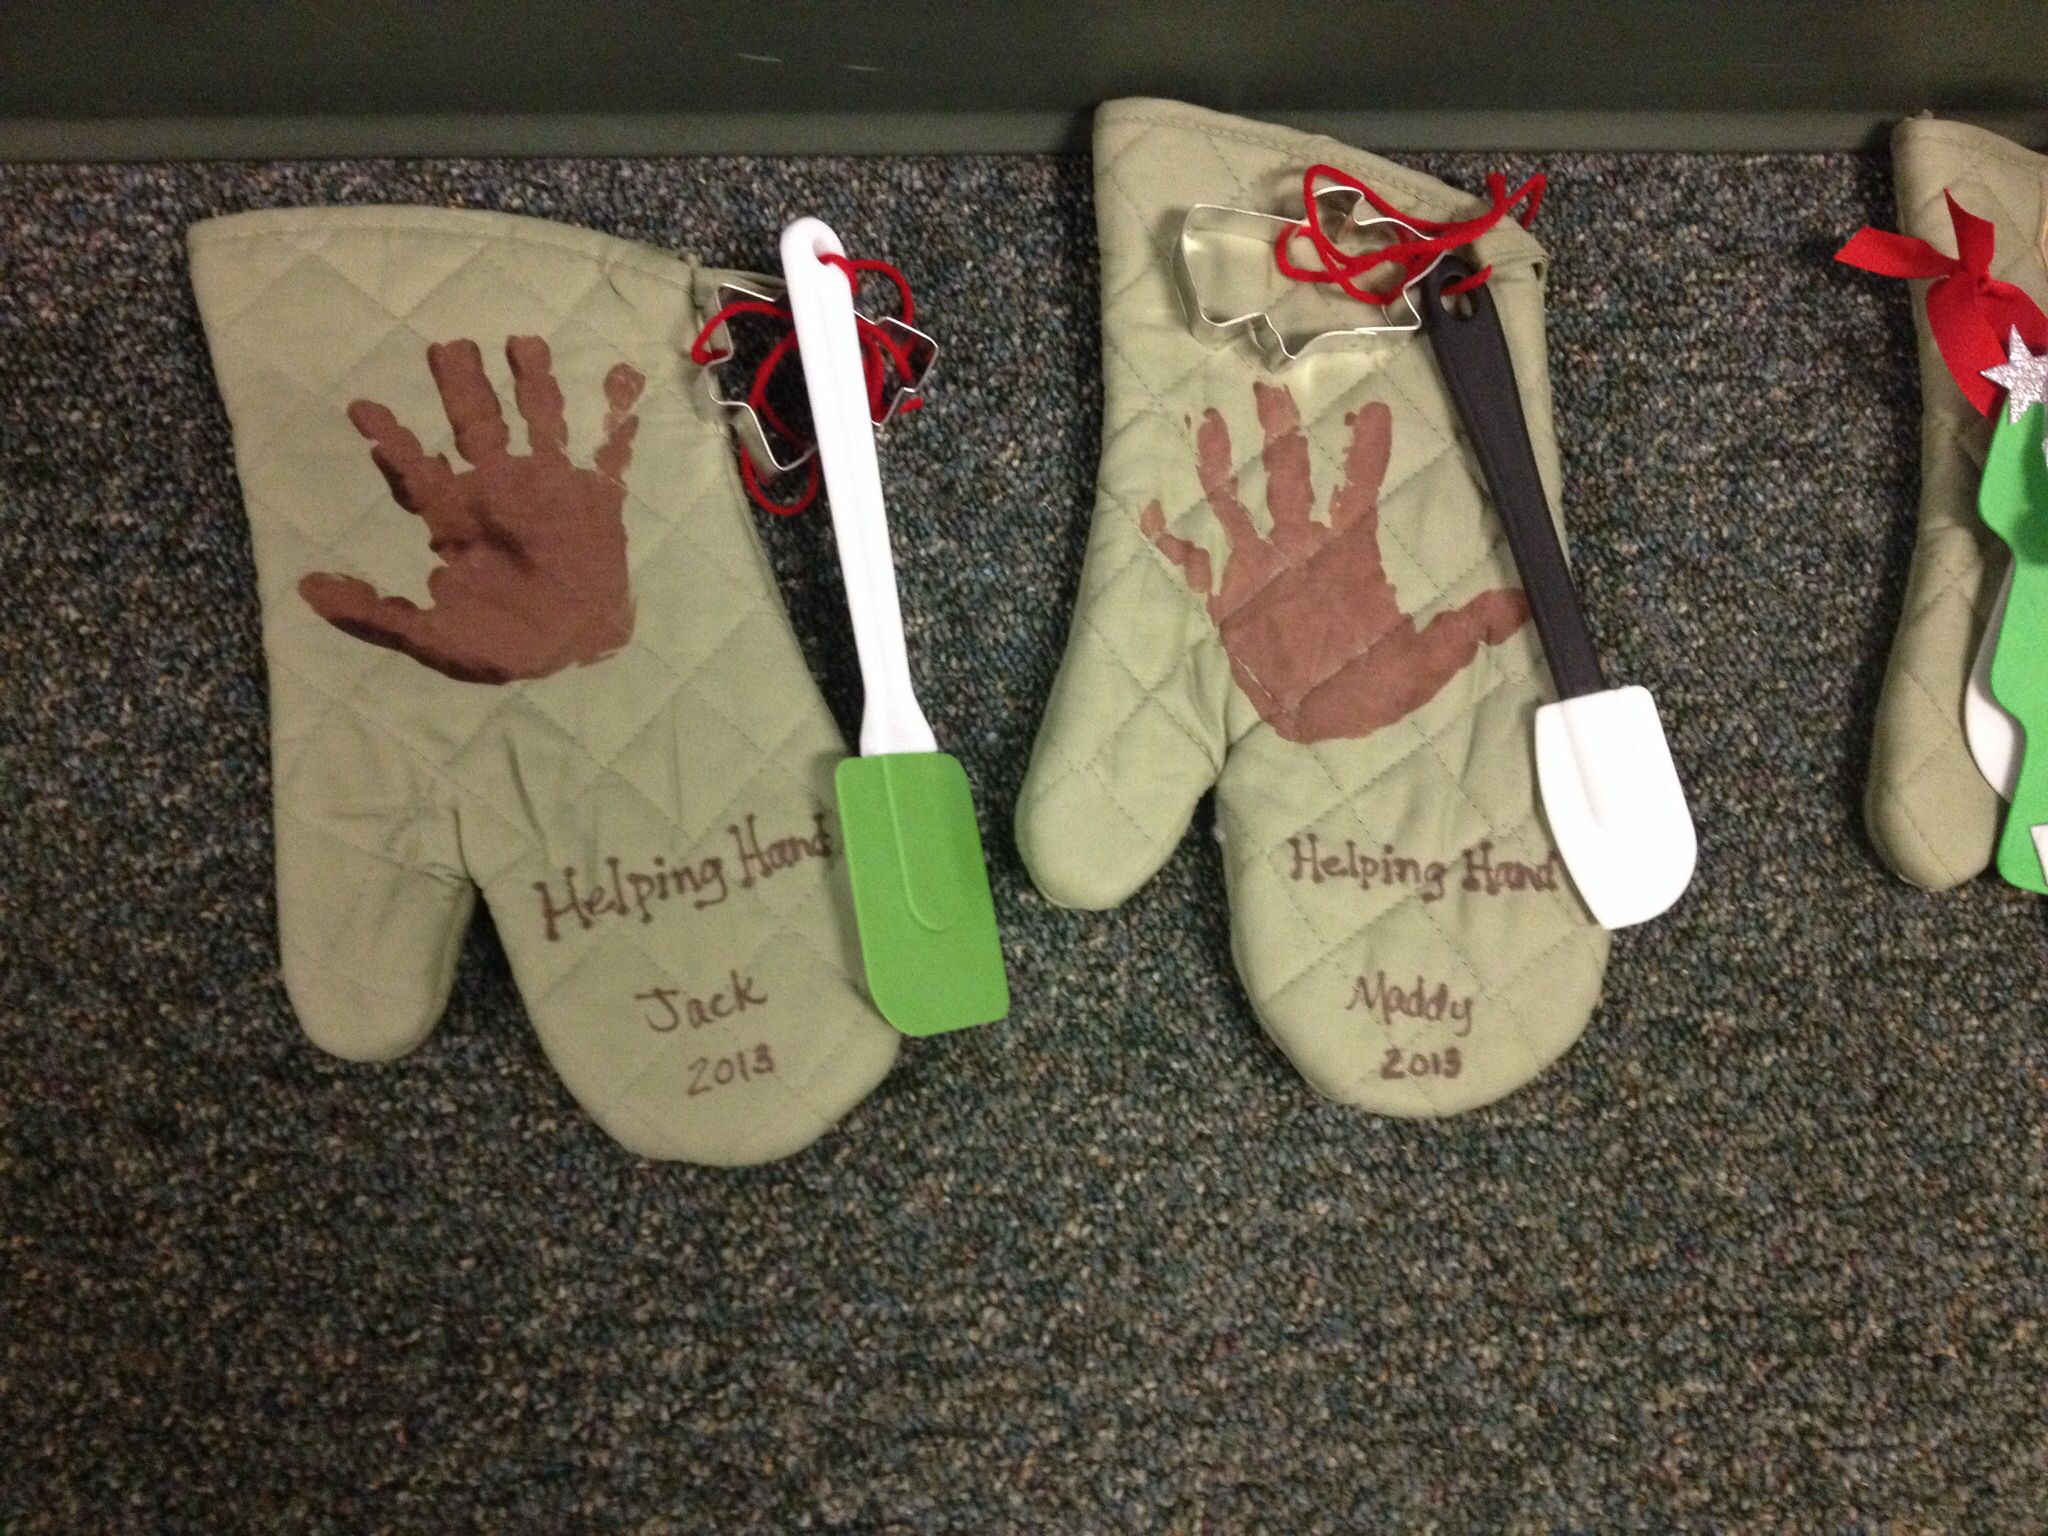 Christmas Gift Ideas For Parents From Preschoolers.Helping Hand Oven Mitts As Christmas Gifts For Parents